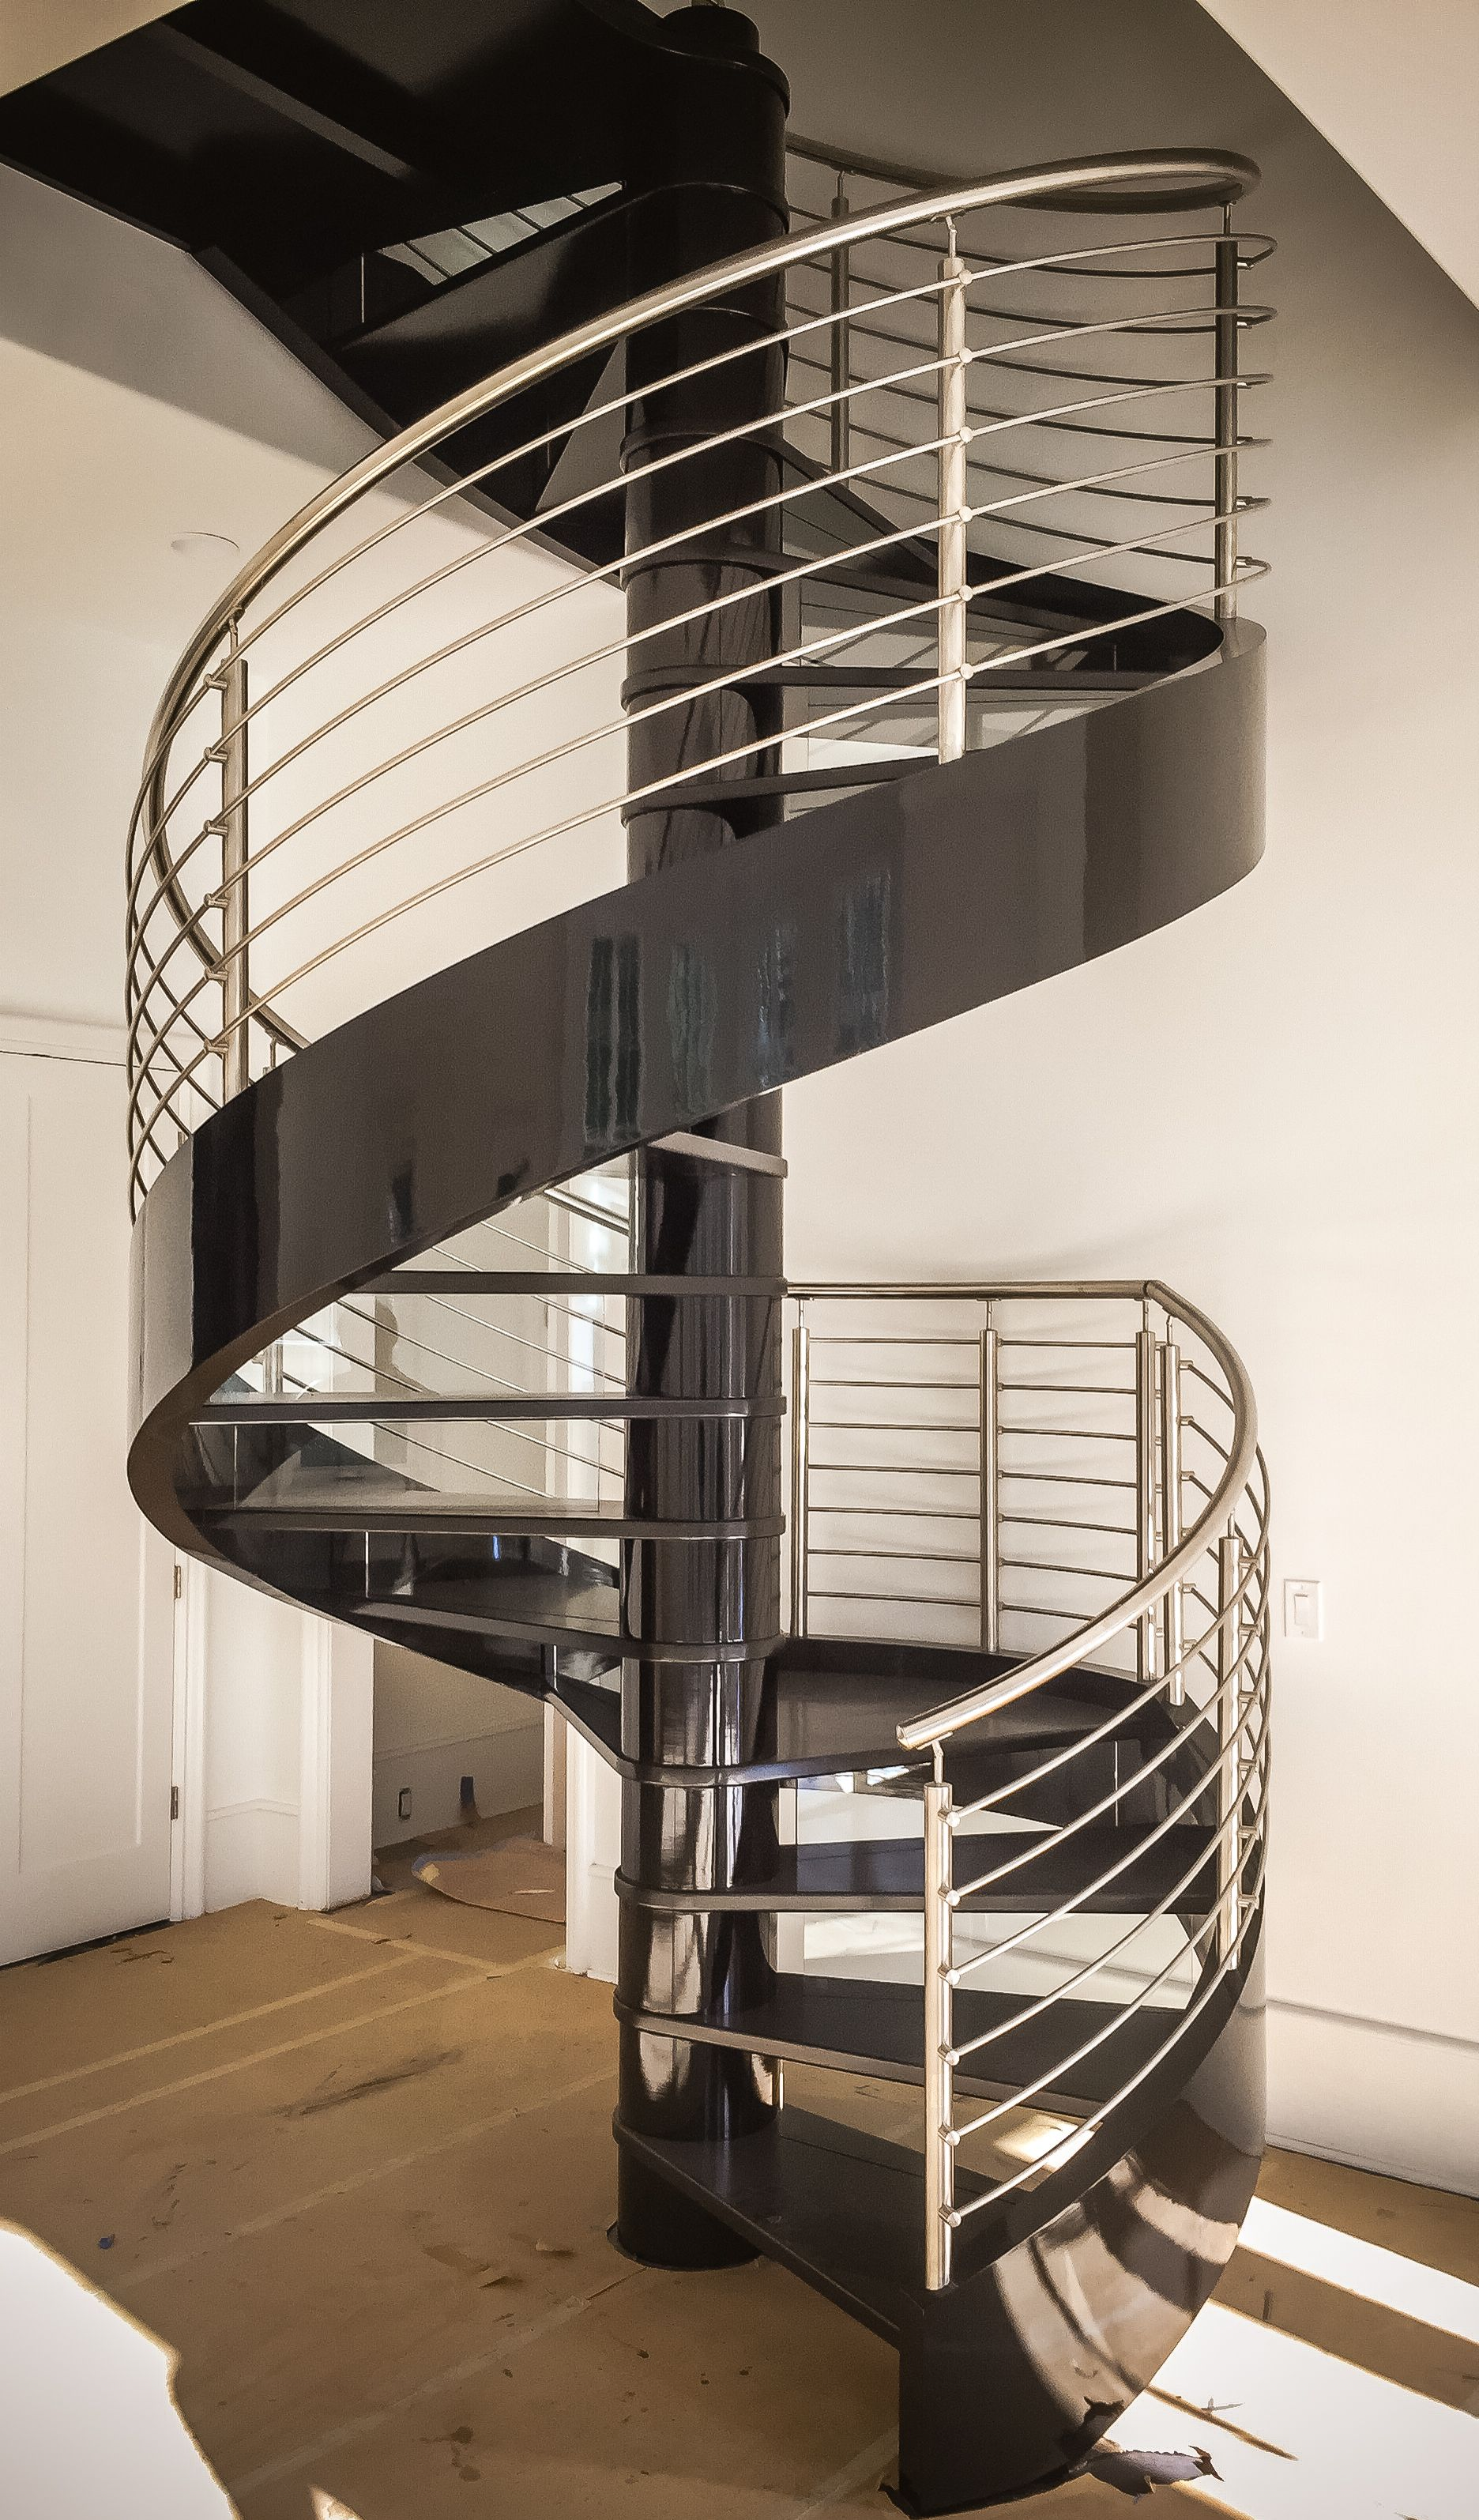 Spiral Stairs Steel Stairs Design Staircase Design Stairs Design